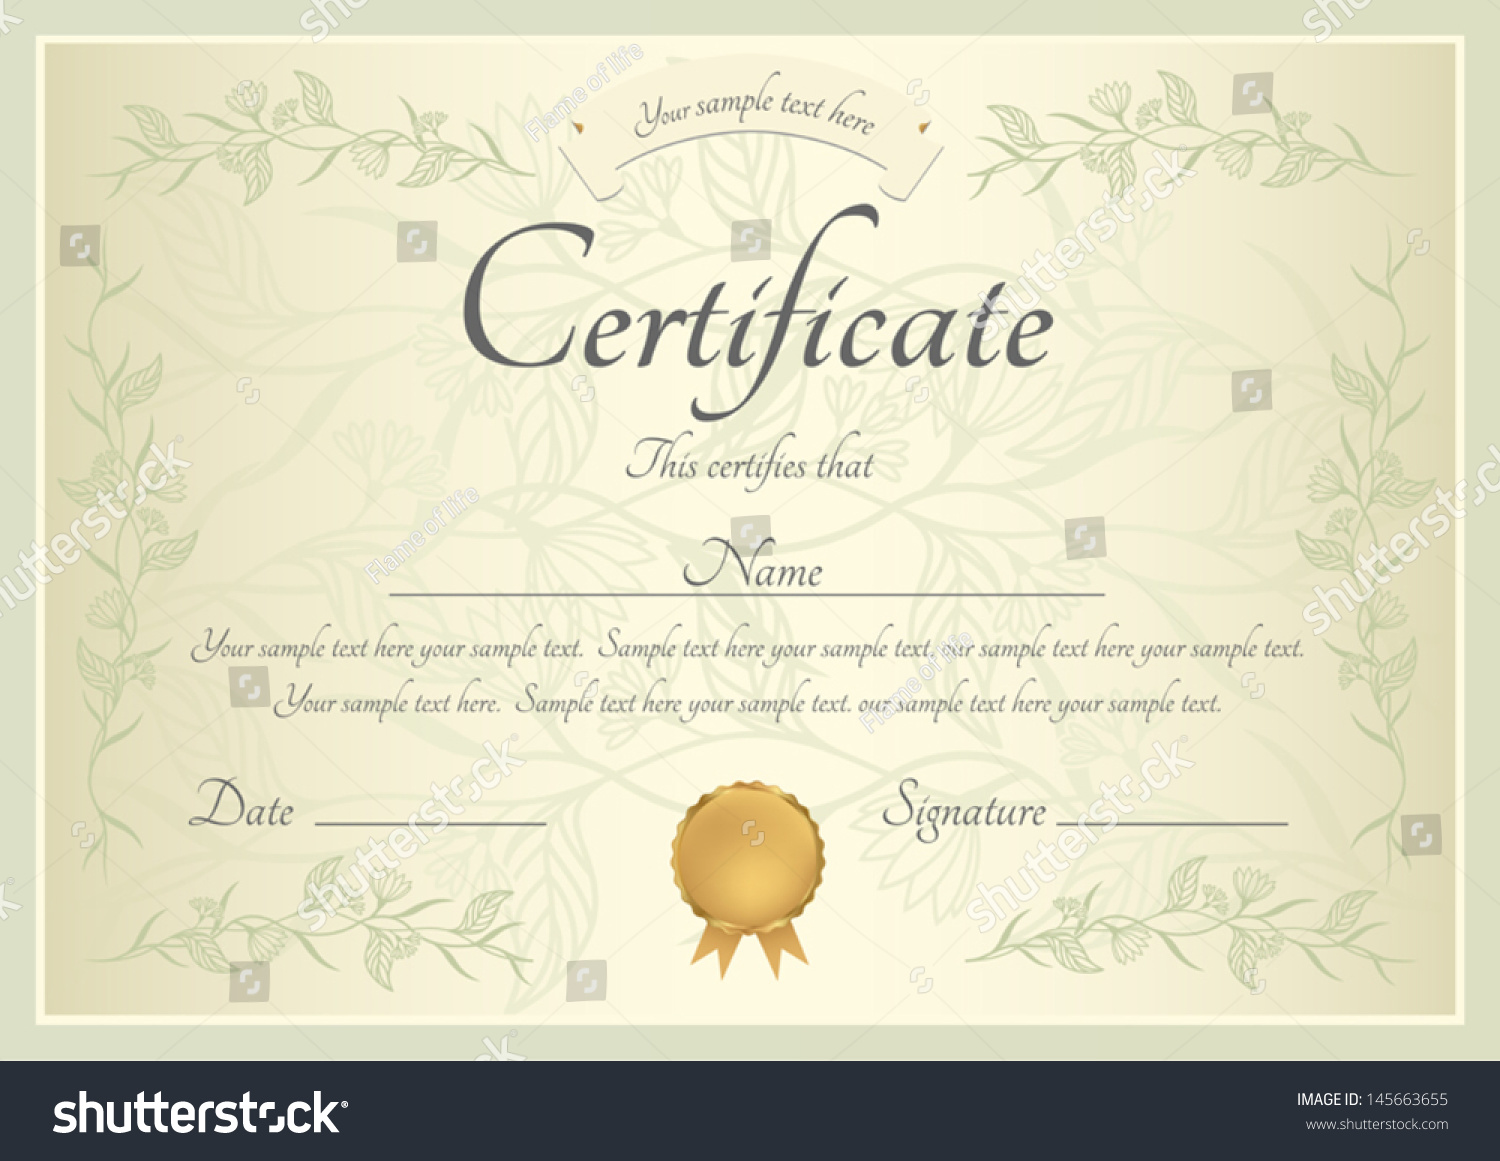 Royalty Free Certificate Of Completion Template Or 145663655